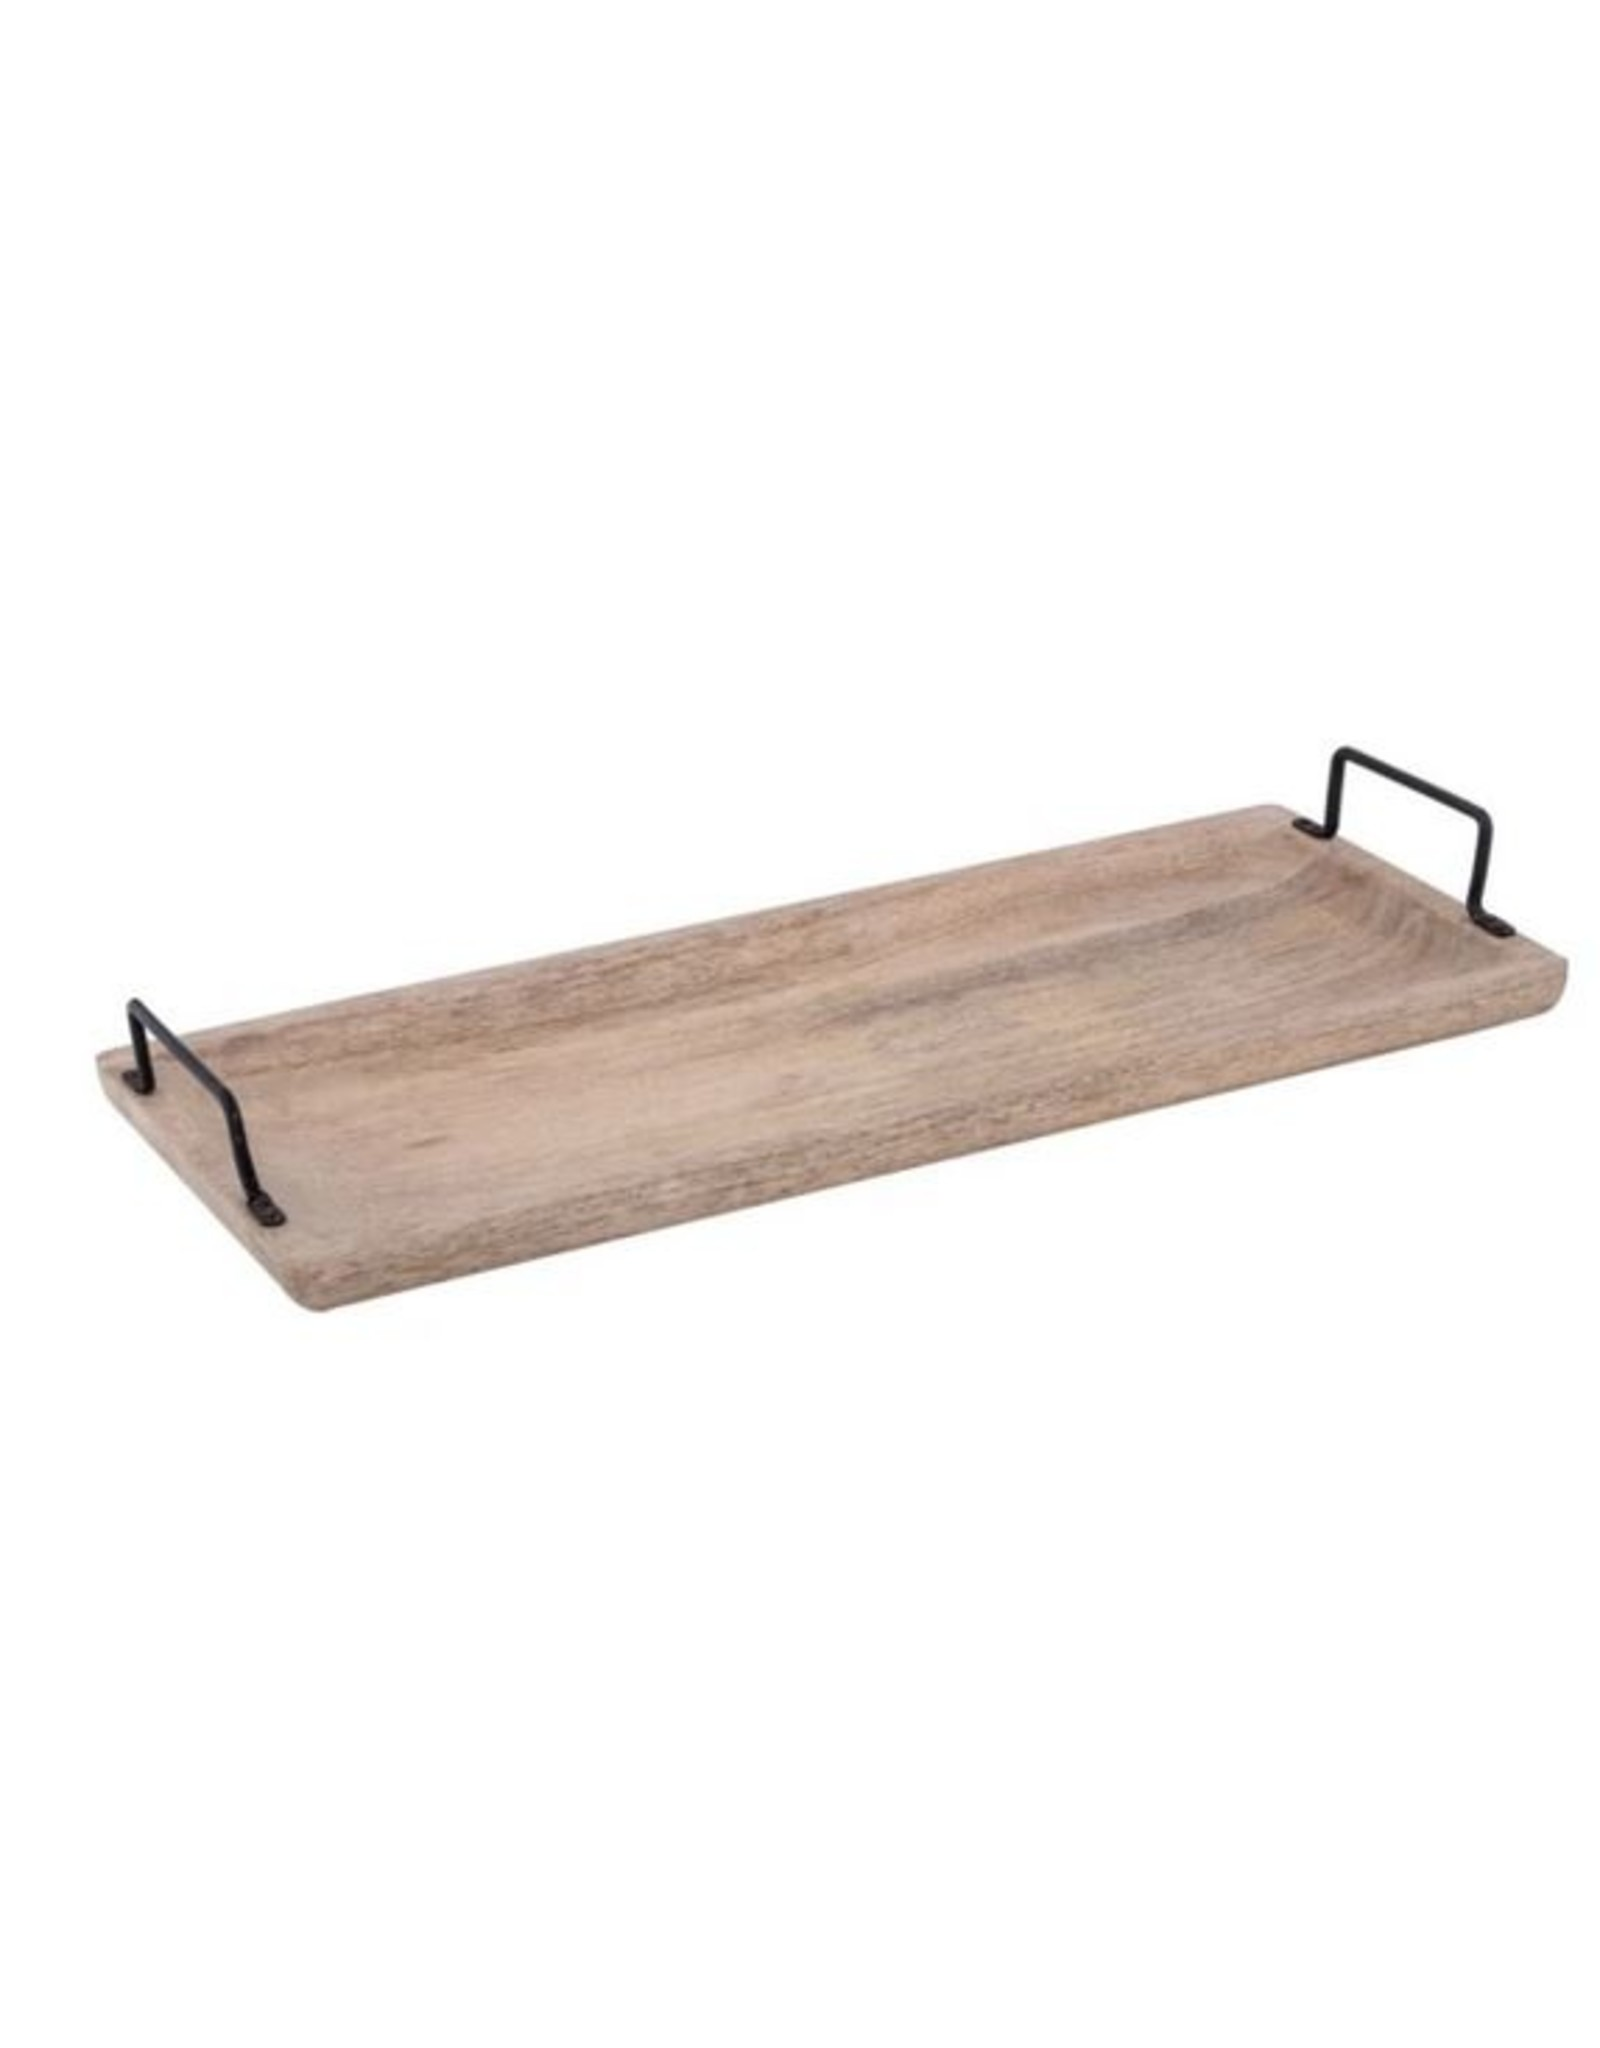 Academy Eliot Tray with Handles 50x25x7.5cm